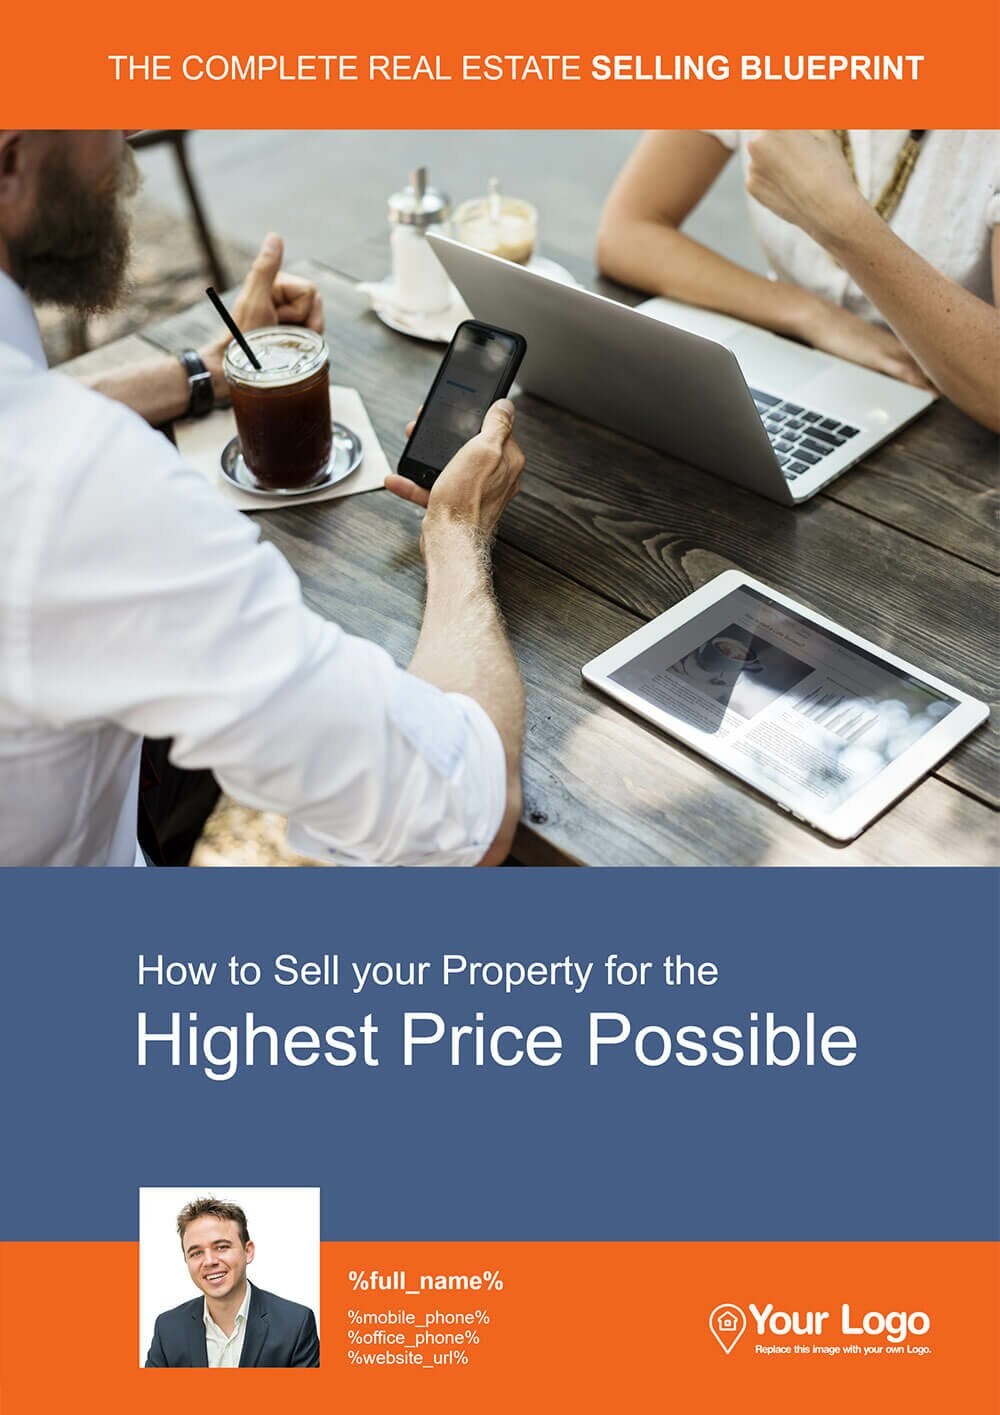 How to sell your property for the highest price possible